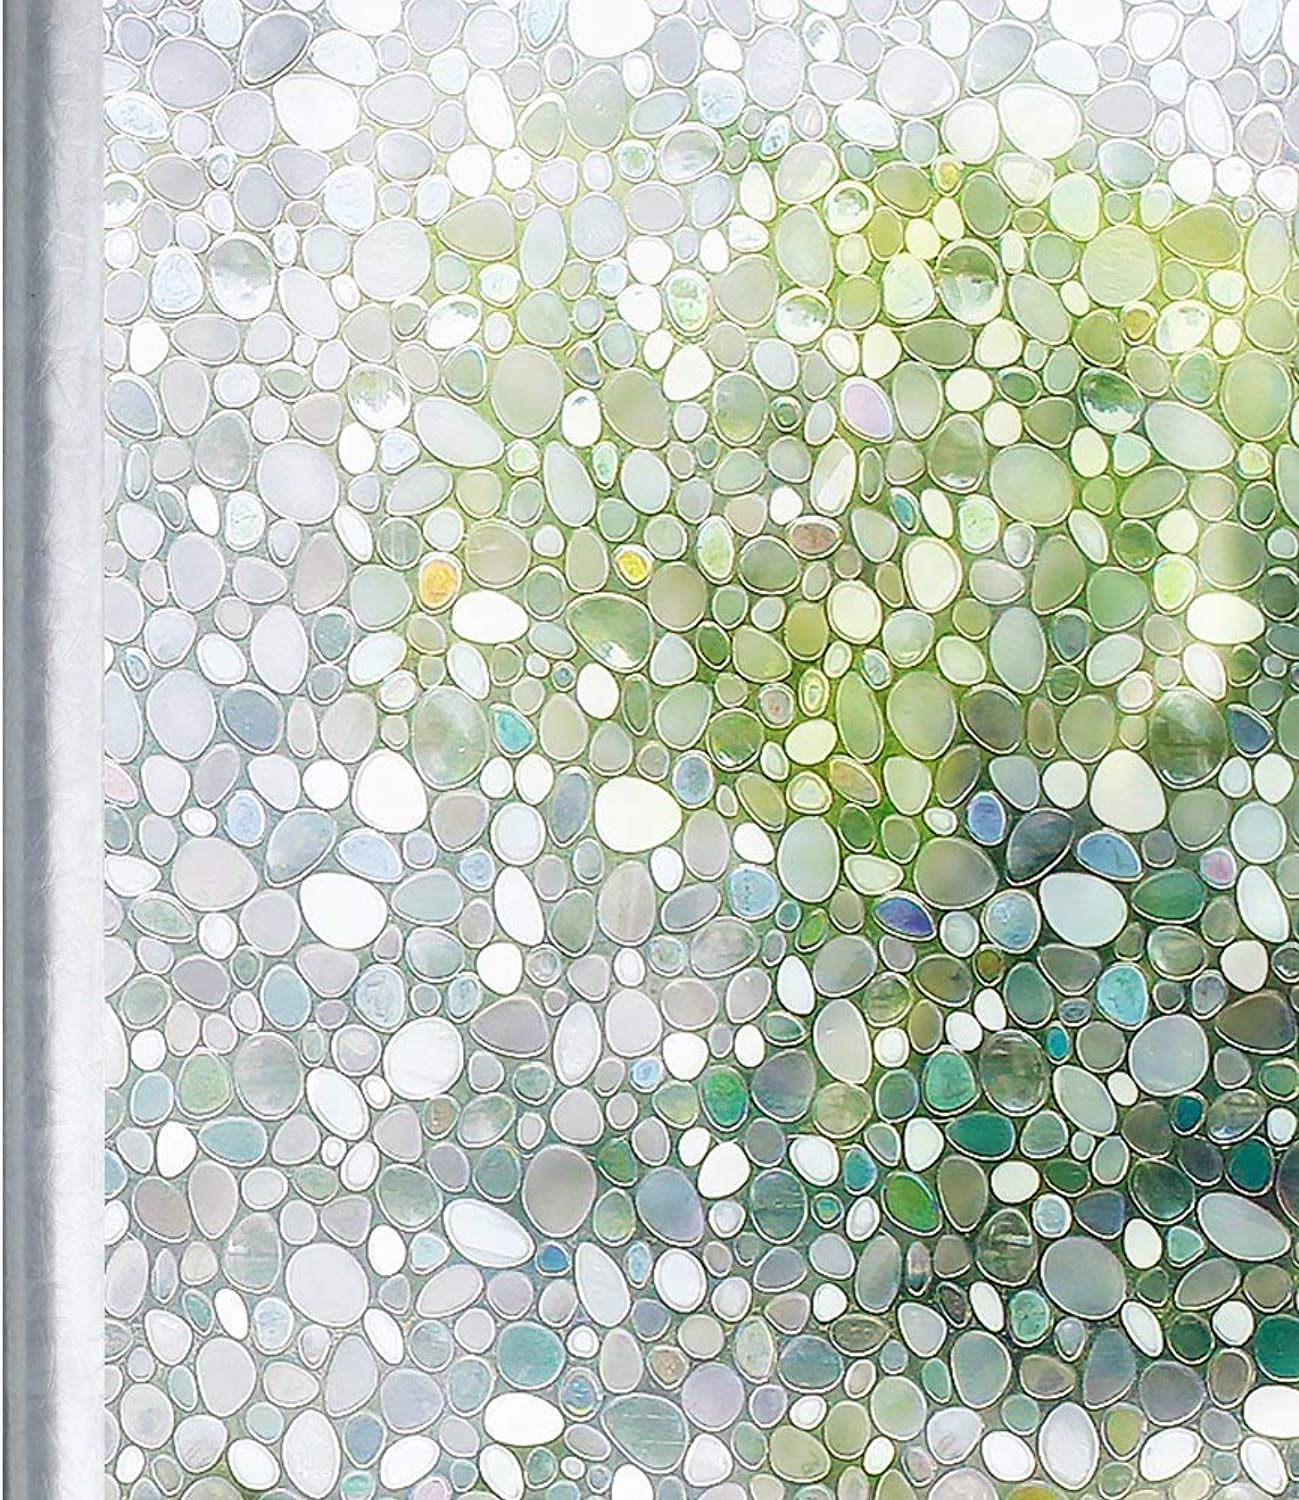 3D Static Frosted Window Film,Self Adhesive Pebble Pattern Privacy Film, Privacy Static Glass Cling Decorative,for Bathroom Office Meeting Room Living Room,45  100cm